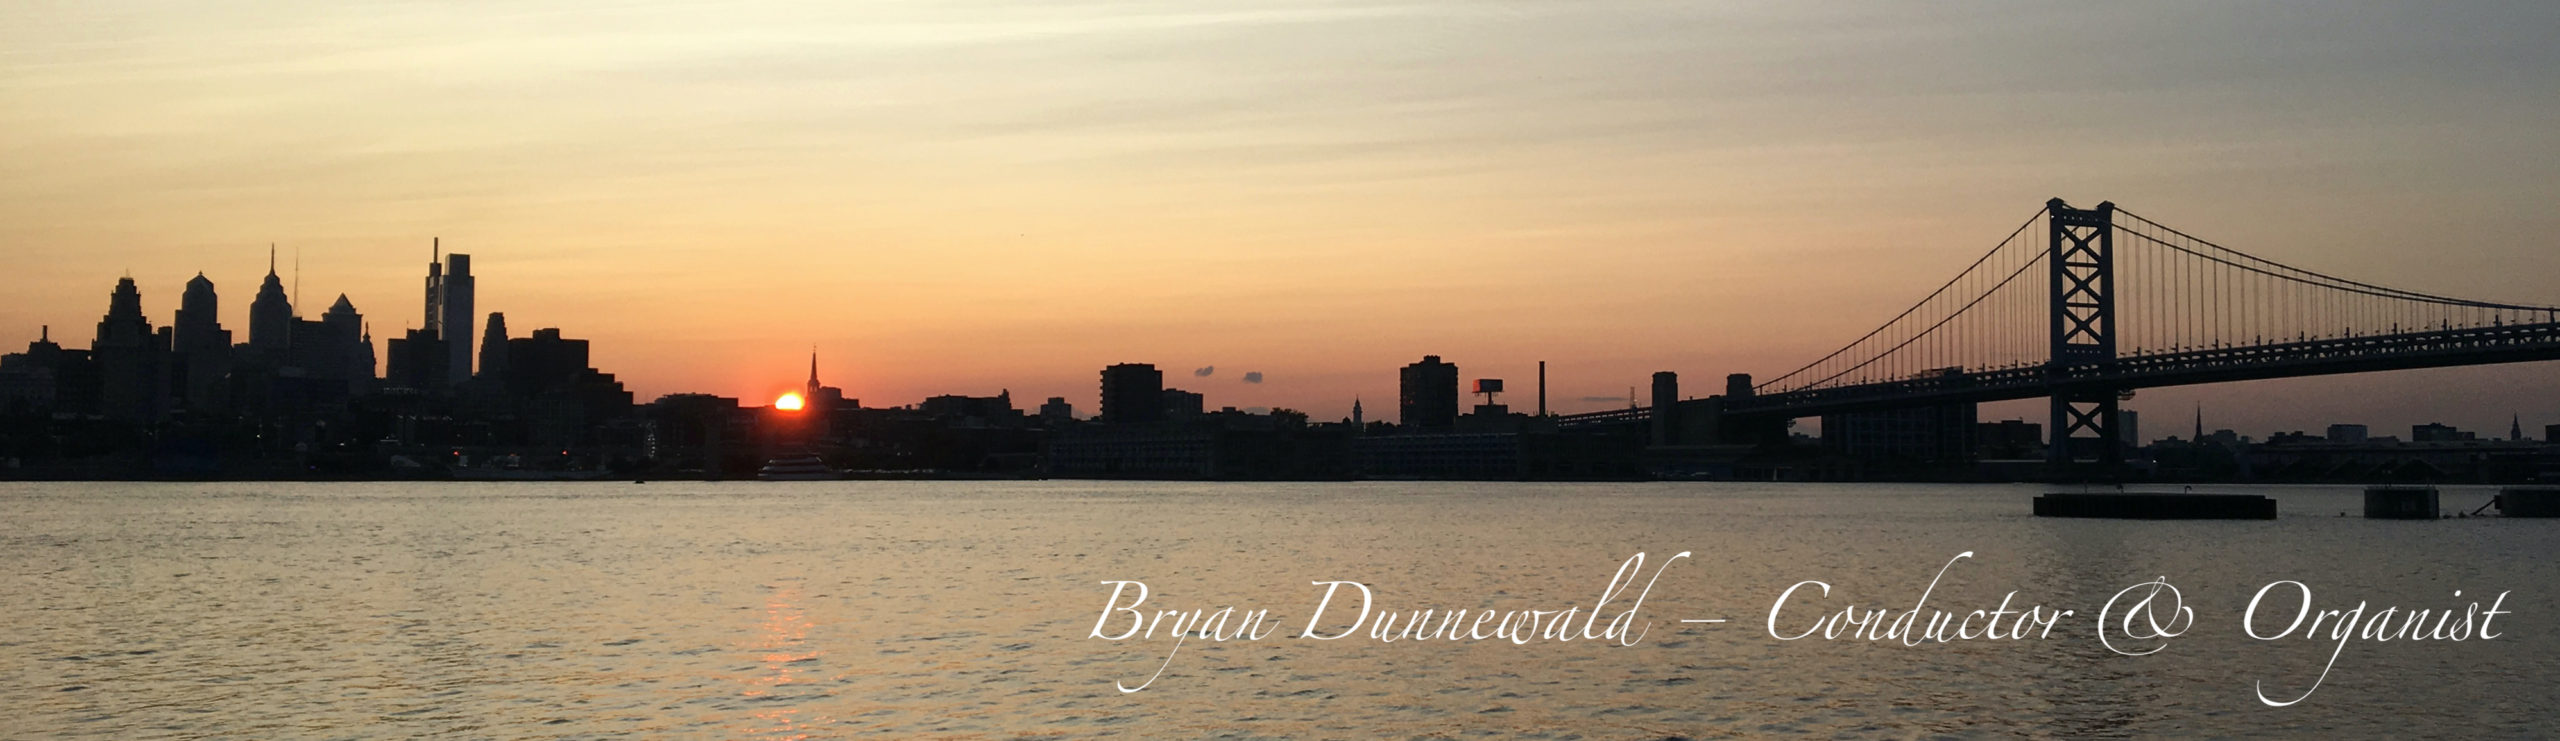 Bryan Dunnewald – Conductor and Organist header image